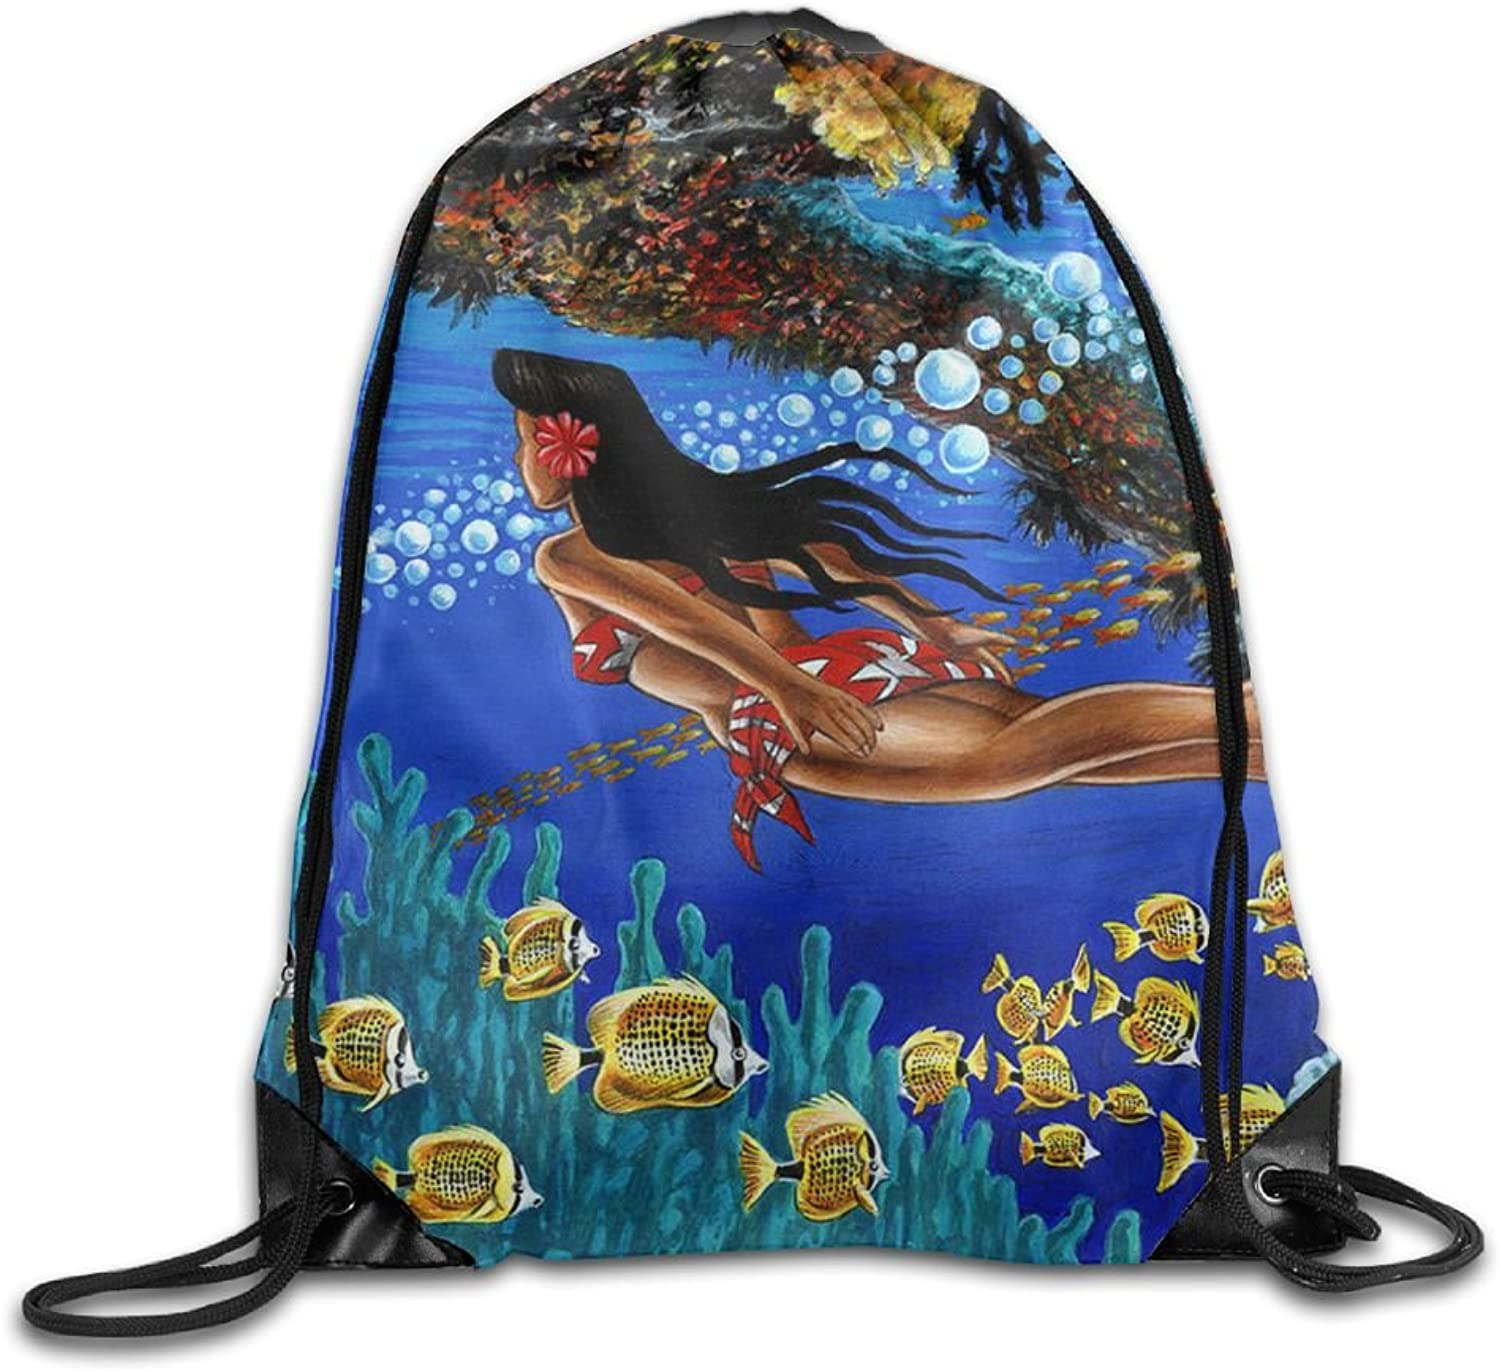 VIMMUCIR Black Girl Swimming in Hawaii Drawstring Backpack Rucksack Shoulder Bags Training Gym Sack for Man and Women